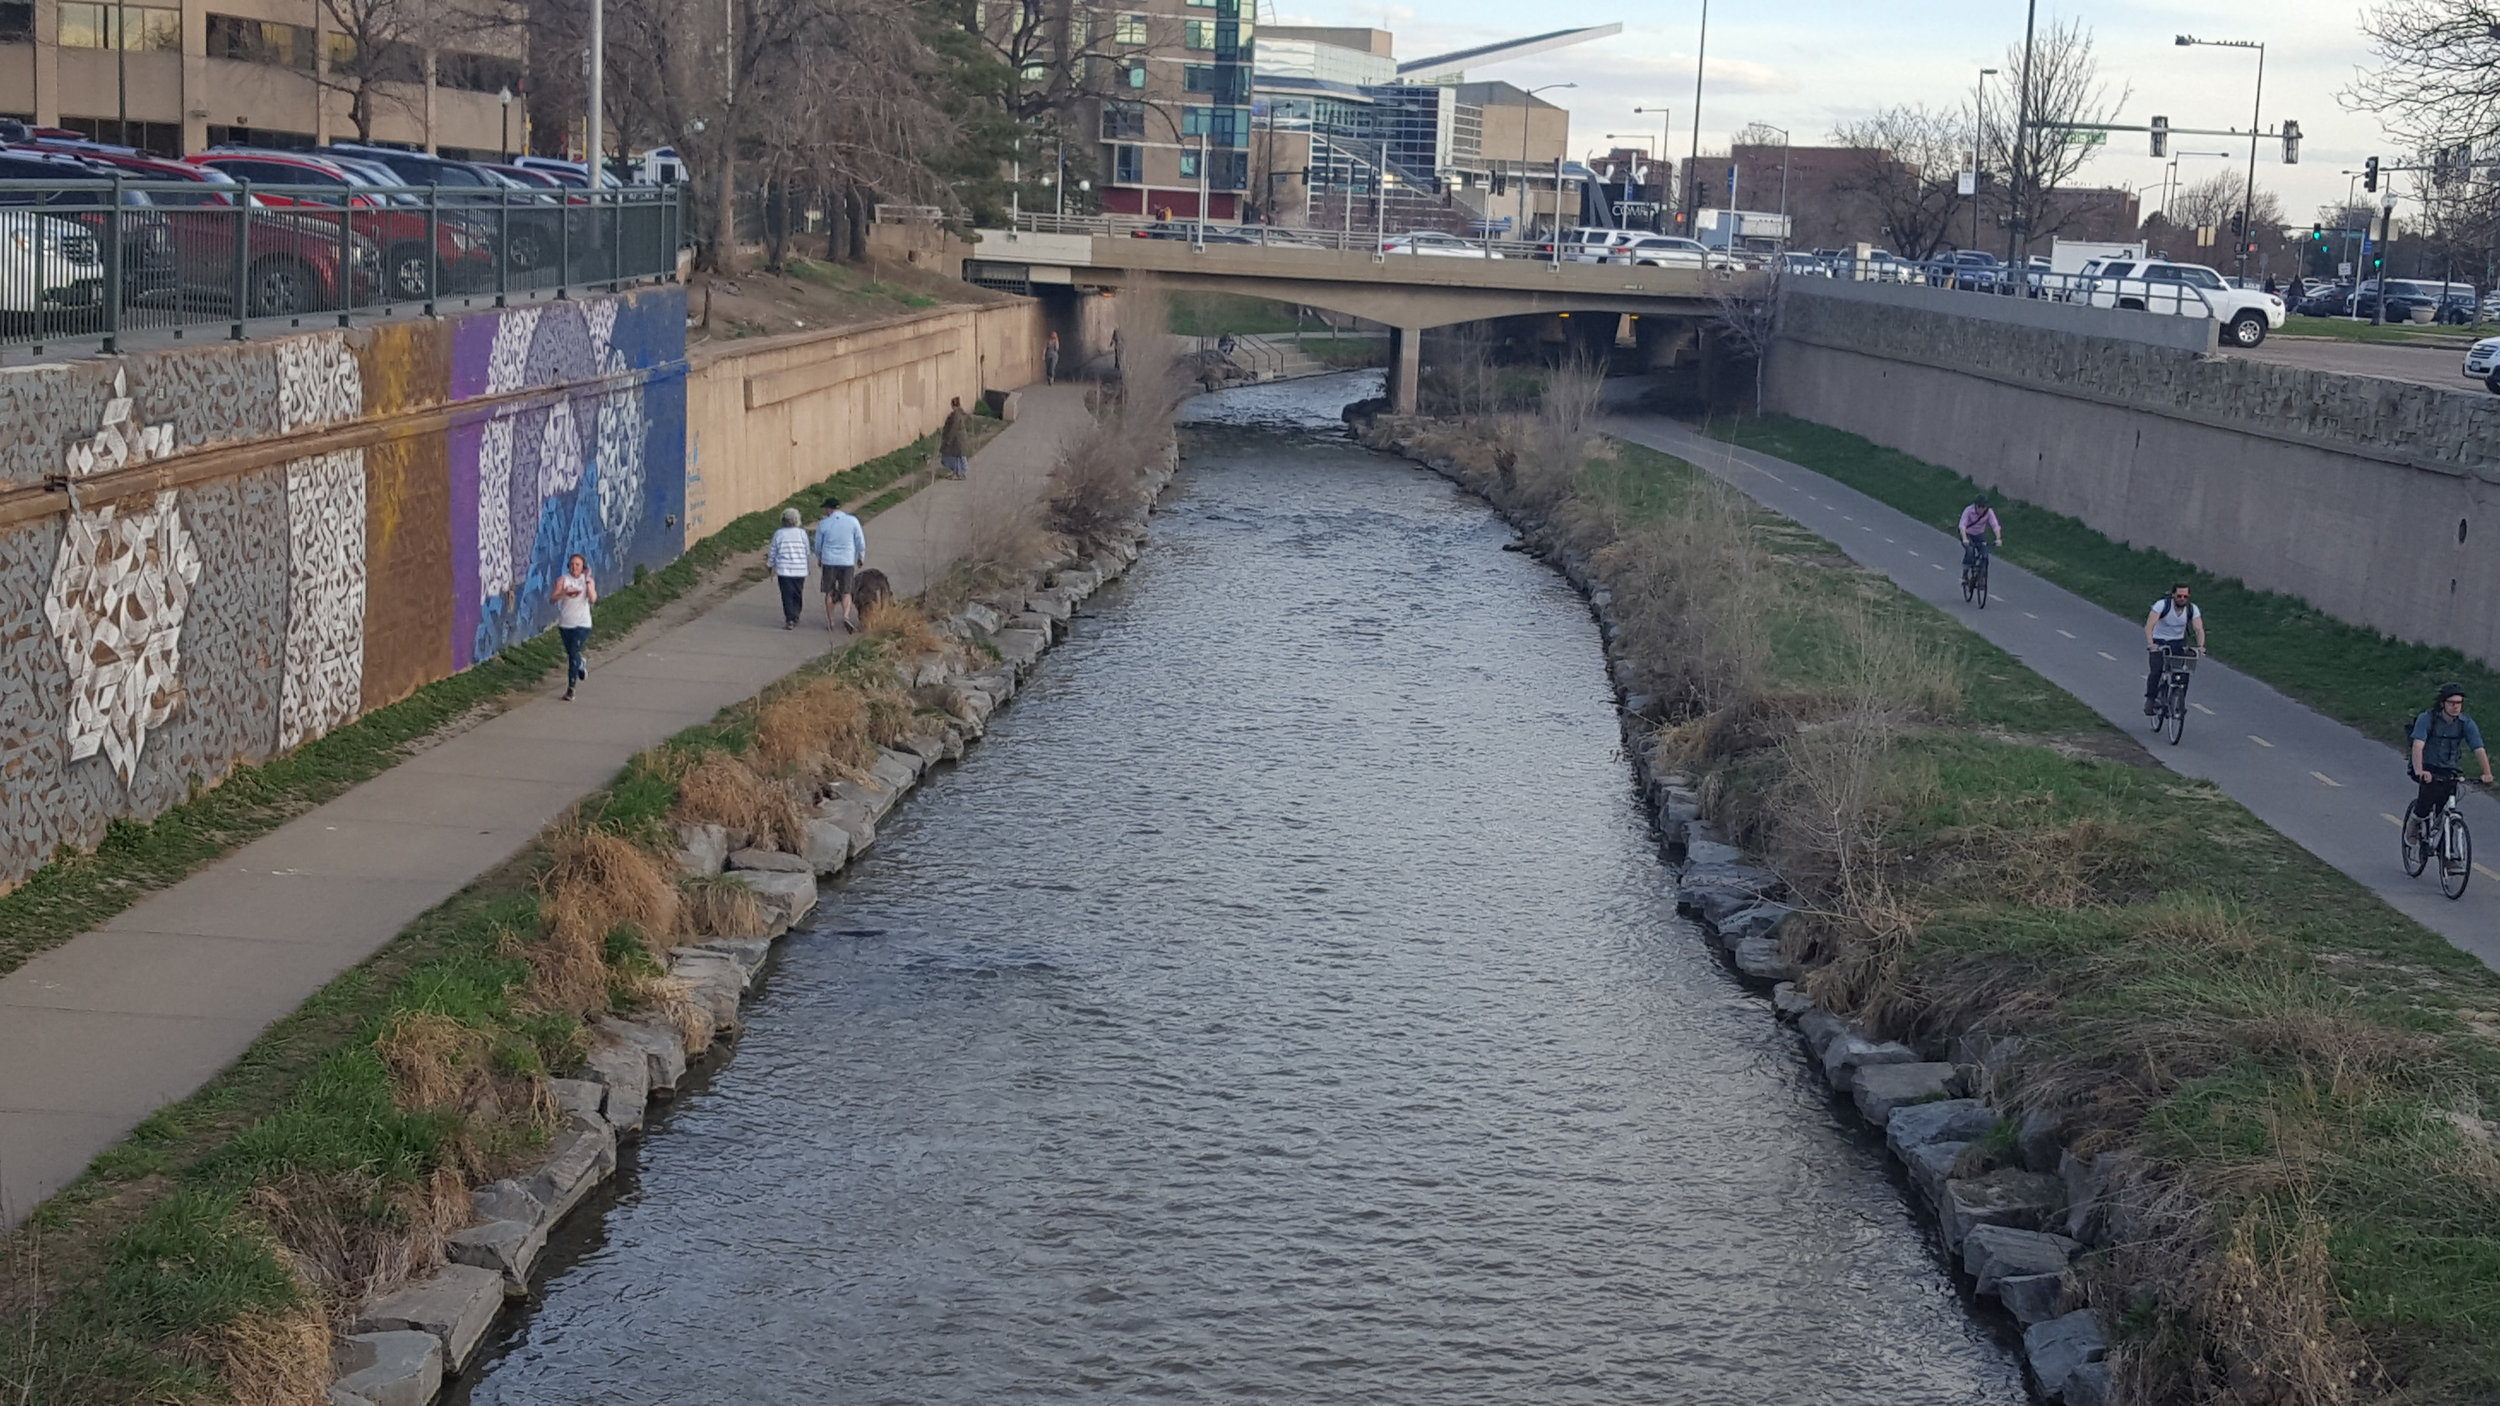 South Platte River near downtown Denver has been redesigned with resiliency, placemaking and mobility elements creating an important community and environmental asset. (Photo: MZimmerman)